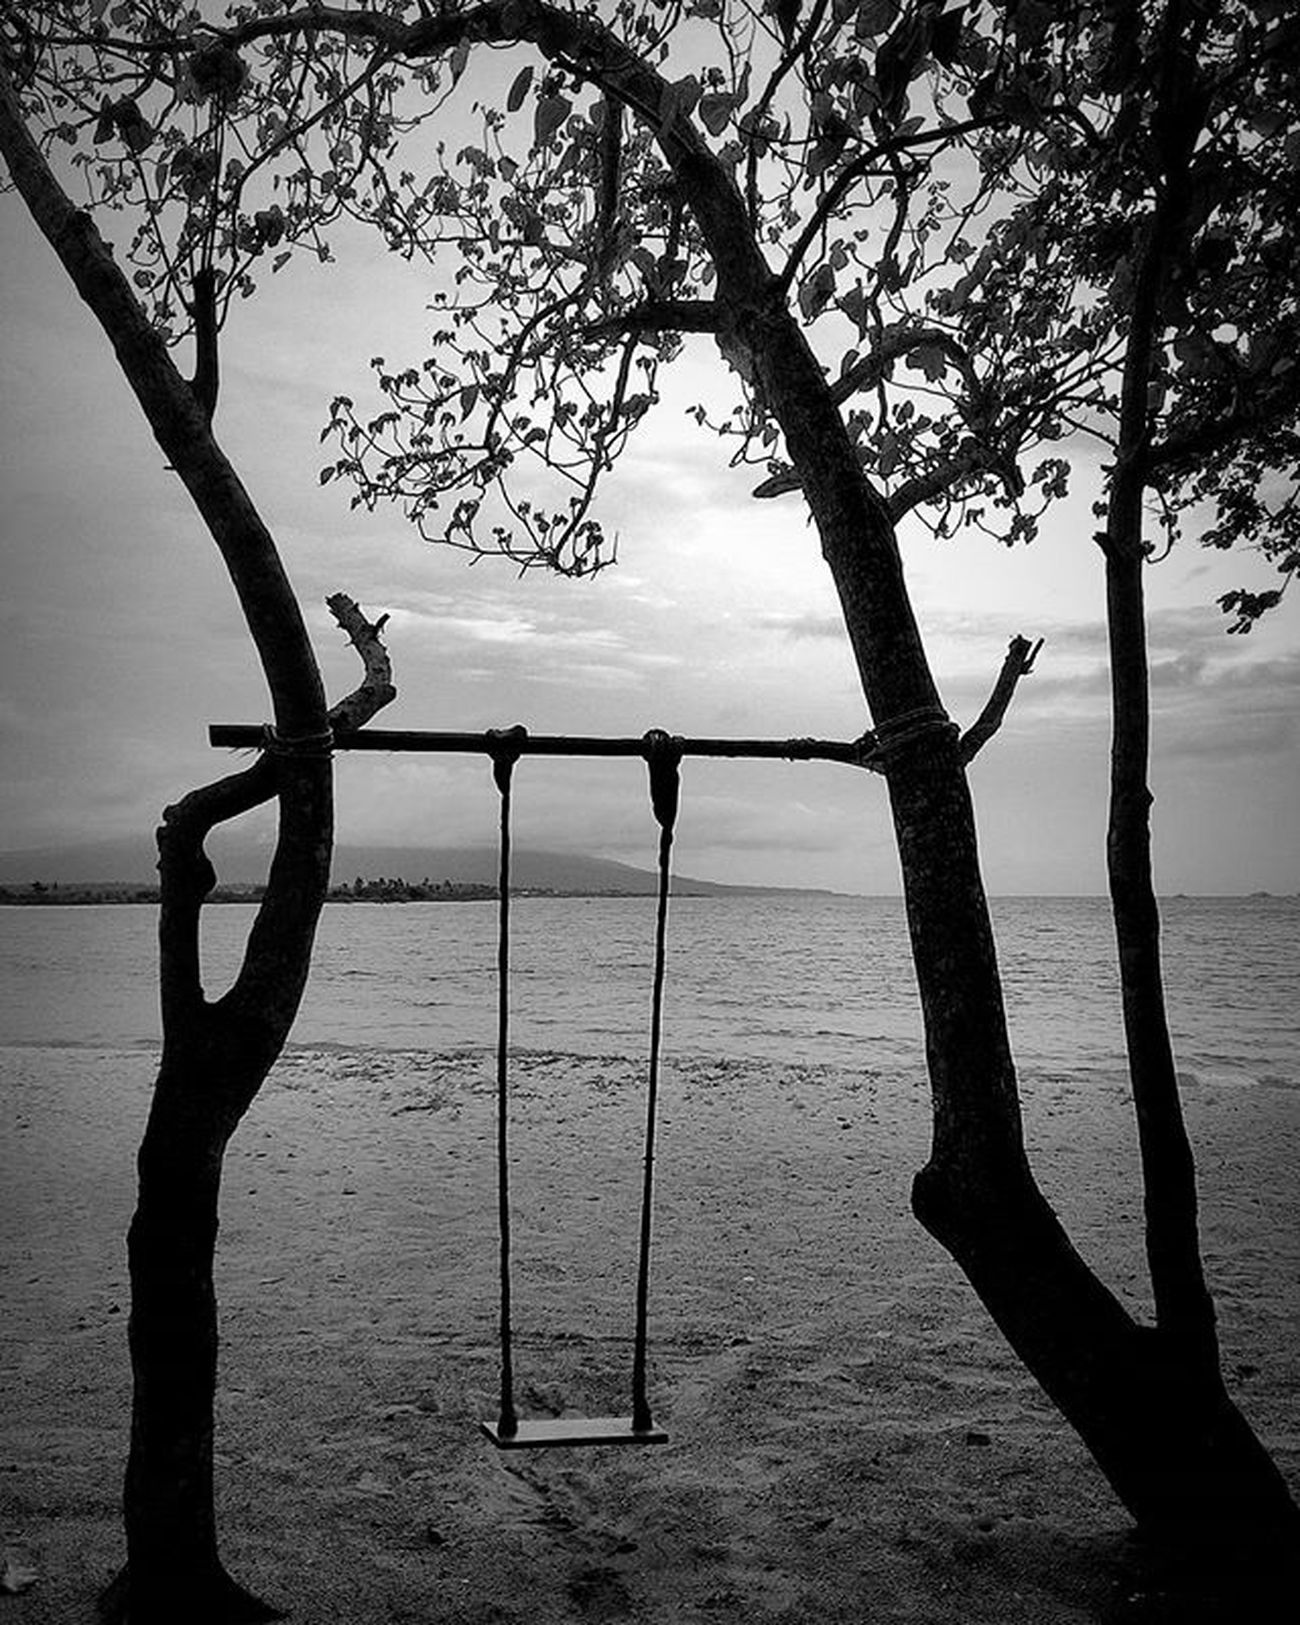 Lonely swing Swing Ayunan Beach Kalianda Eltyresortkrakatoa Lampung INDONESIA 1000kata Indonesiaplayground Natgeotravel Asiangeographic Asuszenphone5 Instalike Instagram Instagood Photooftheday